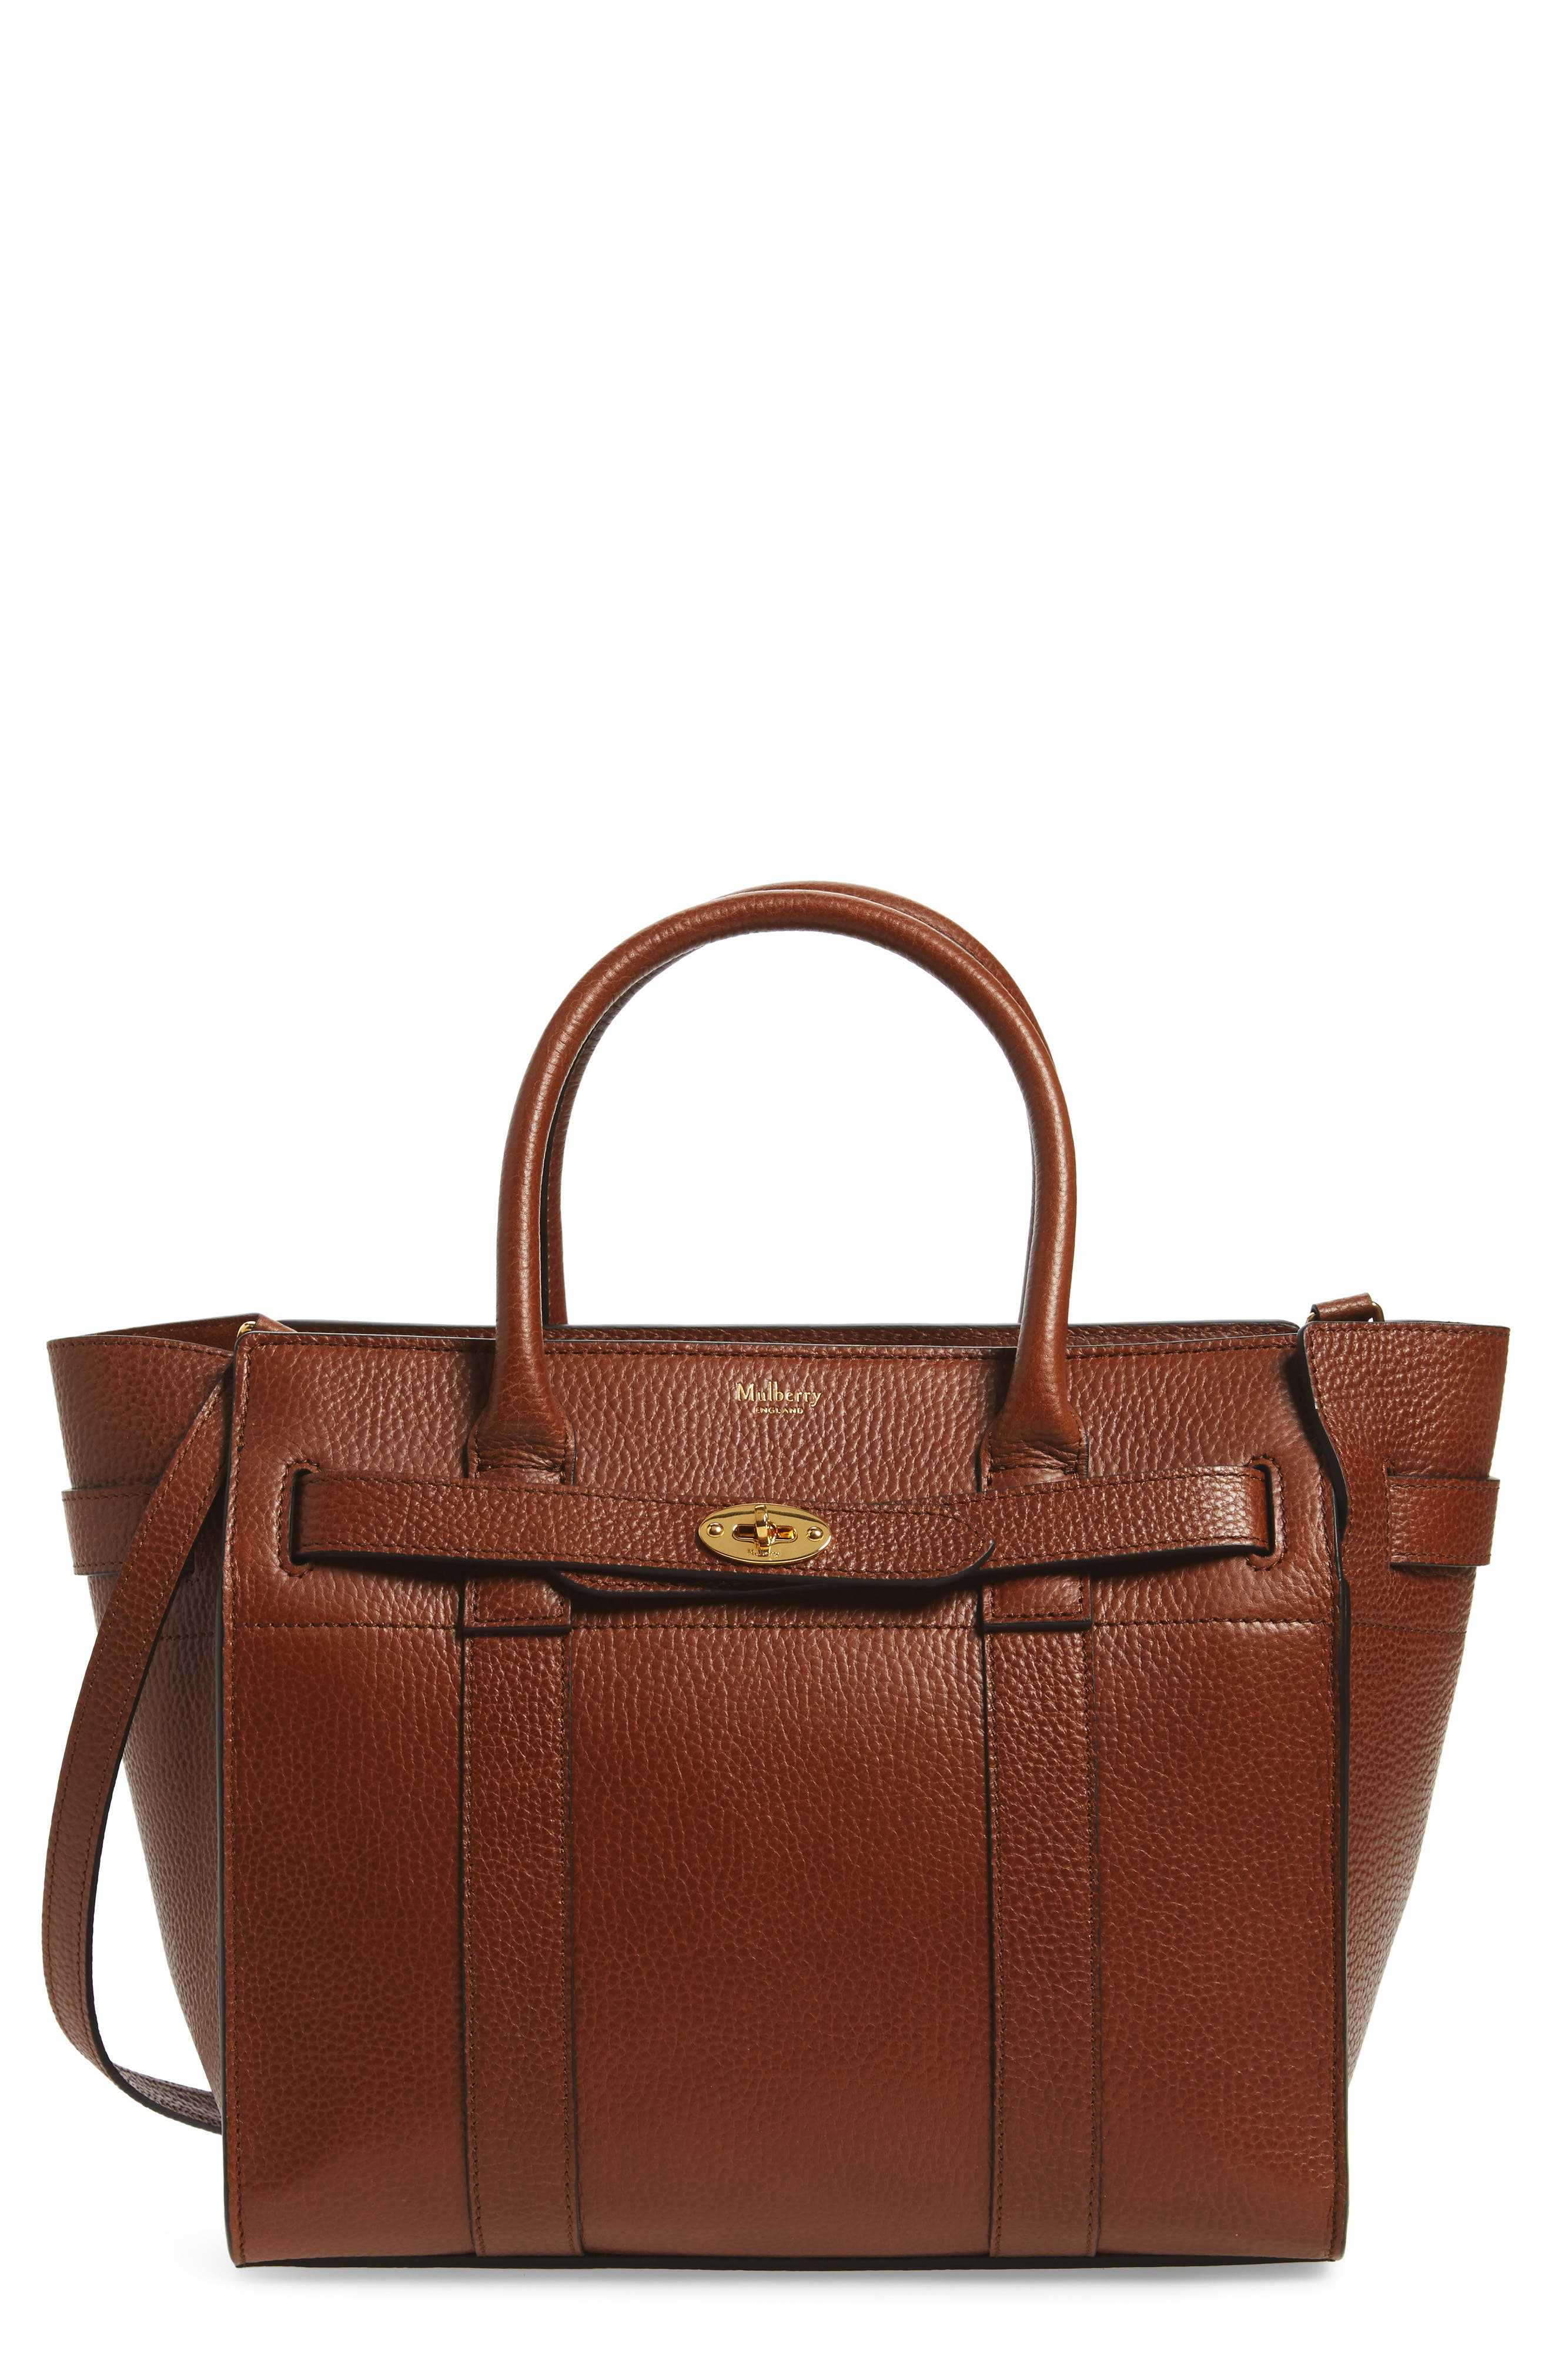 Mulberry Small Bayswater Leather Satchel | Nordstrom